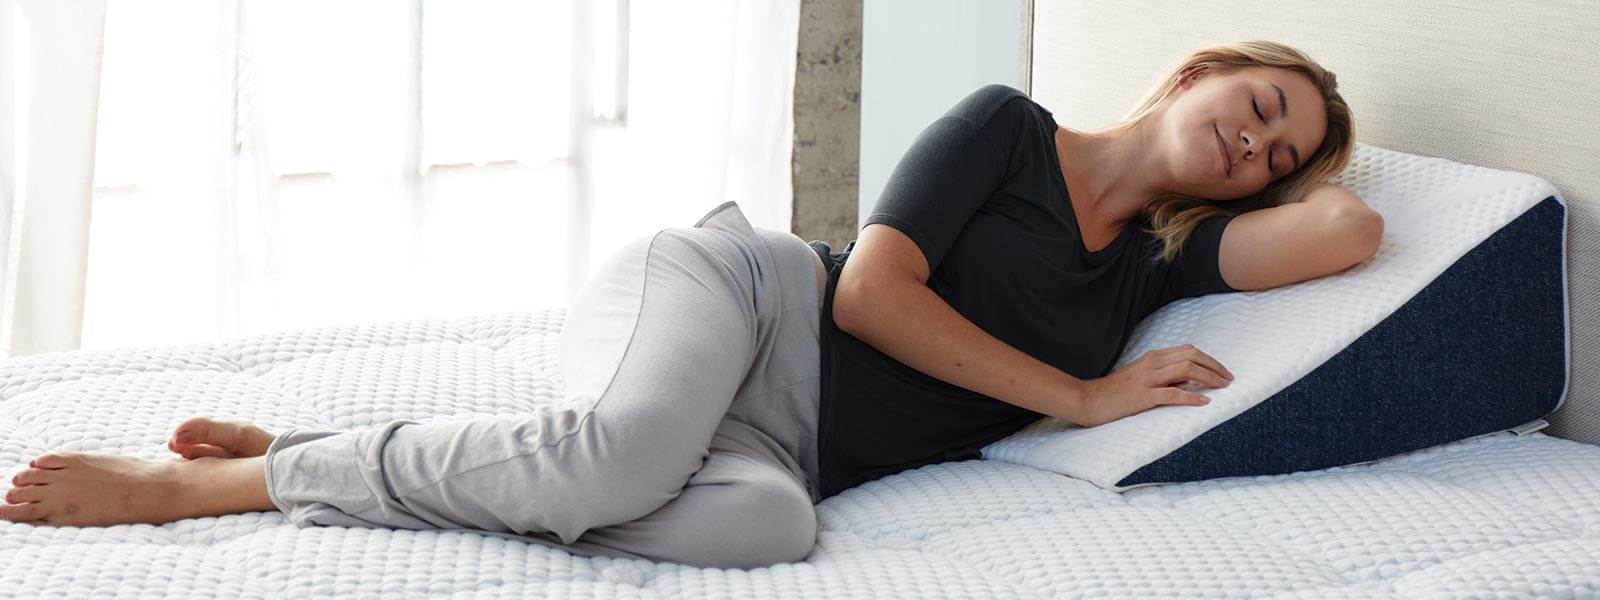 How a Wedge Pillow can help with sleep apnea, acid reflux, and improving circulation